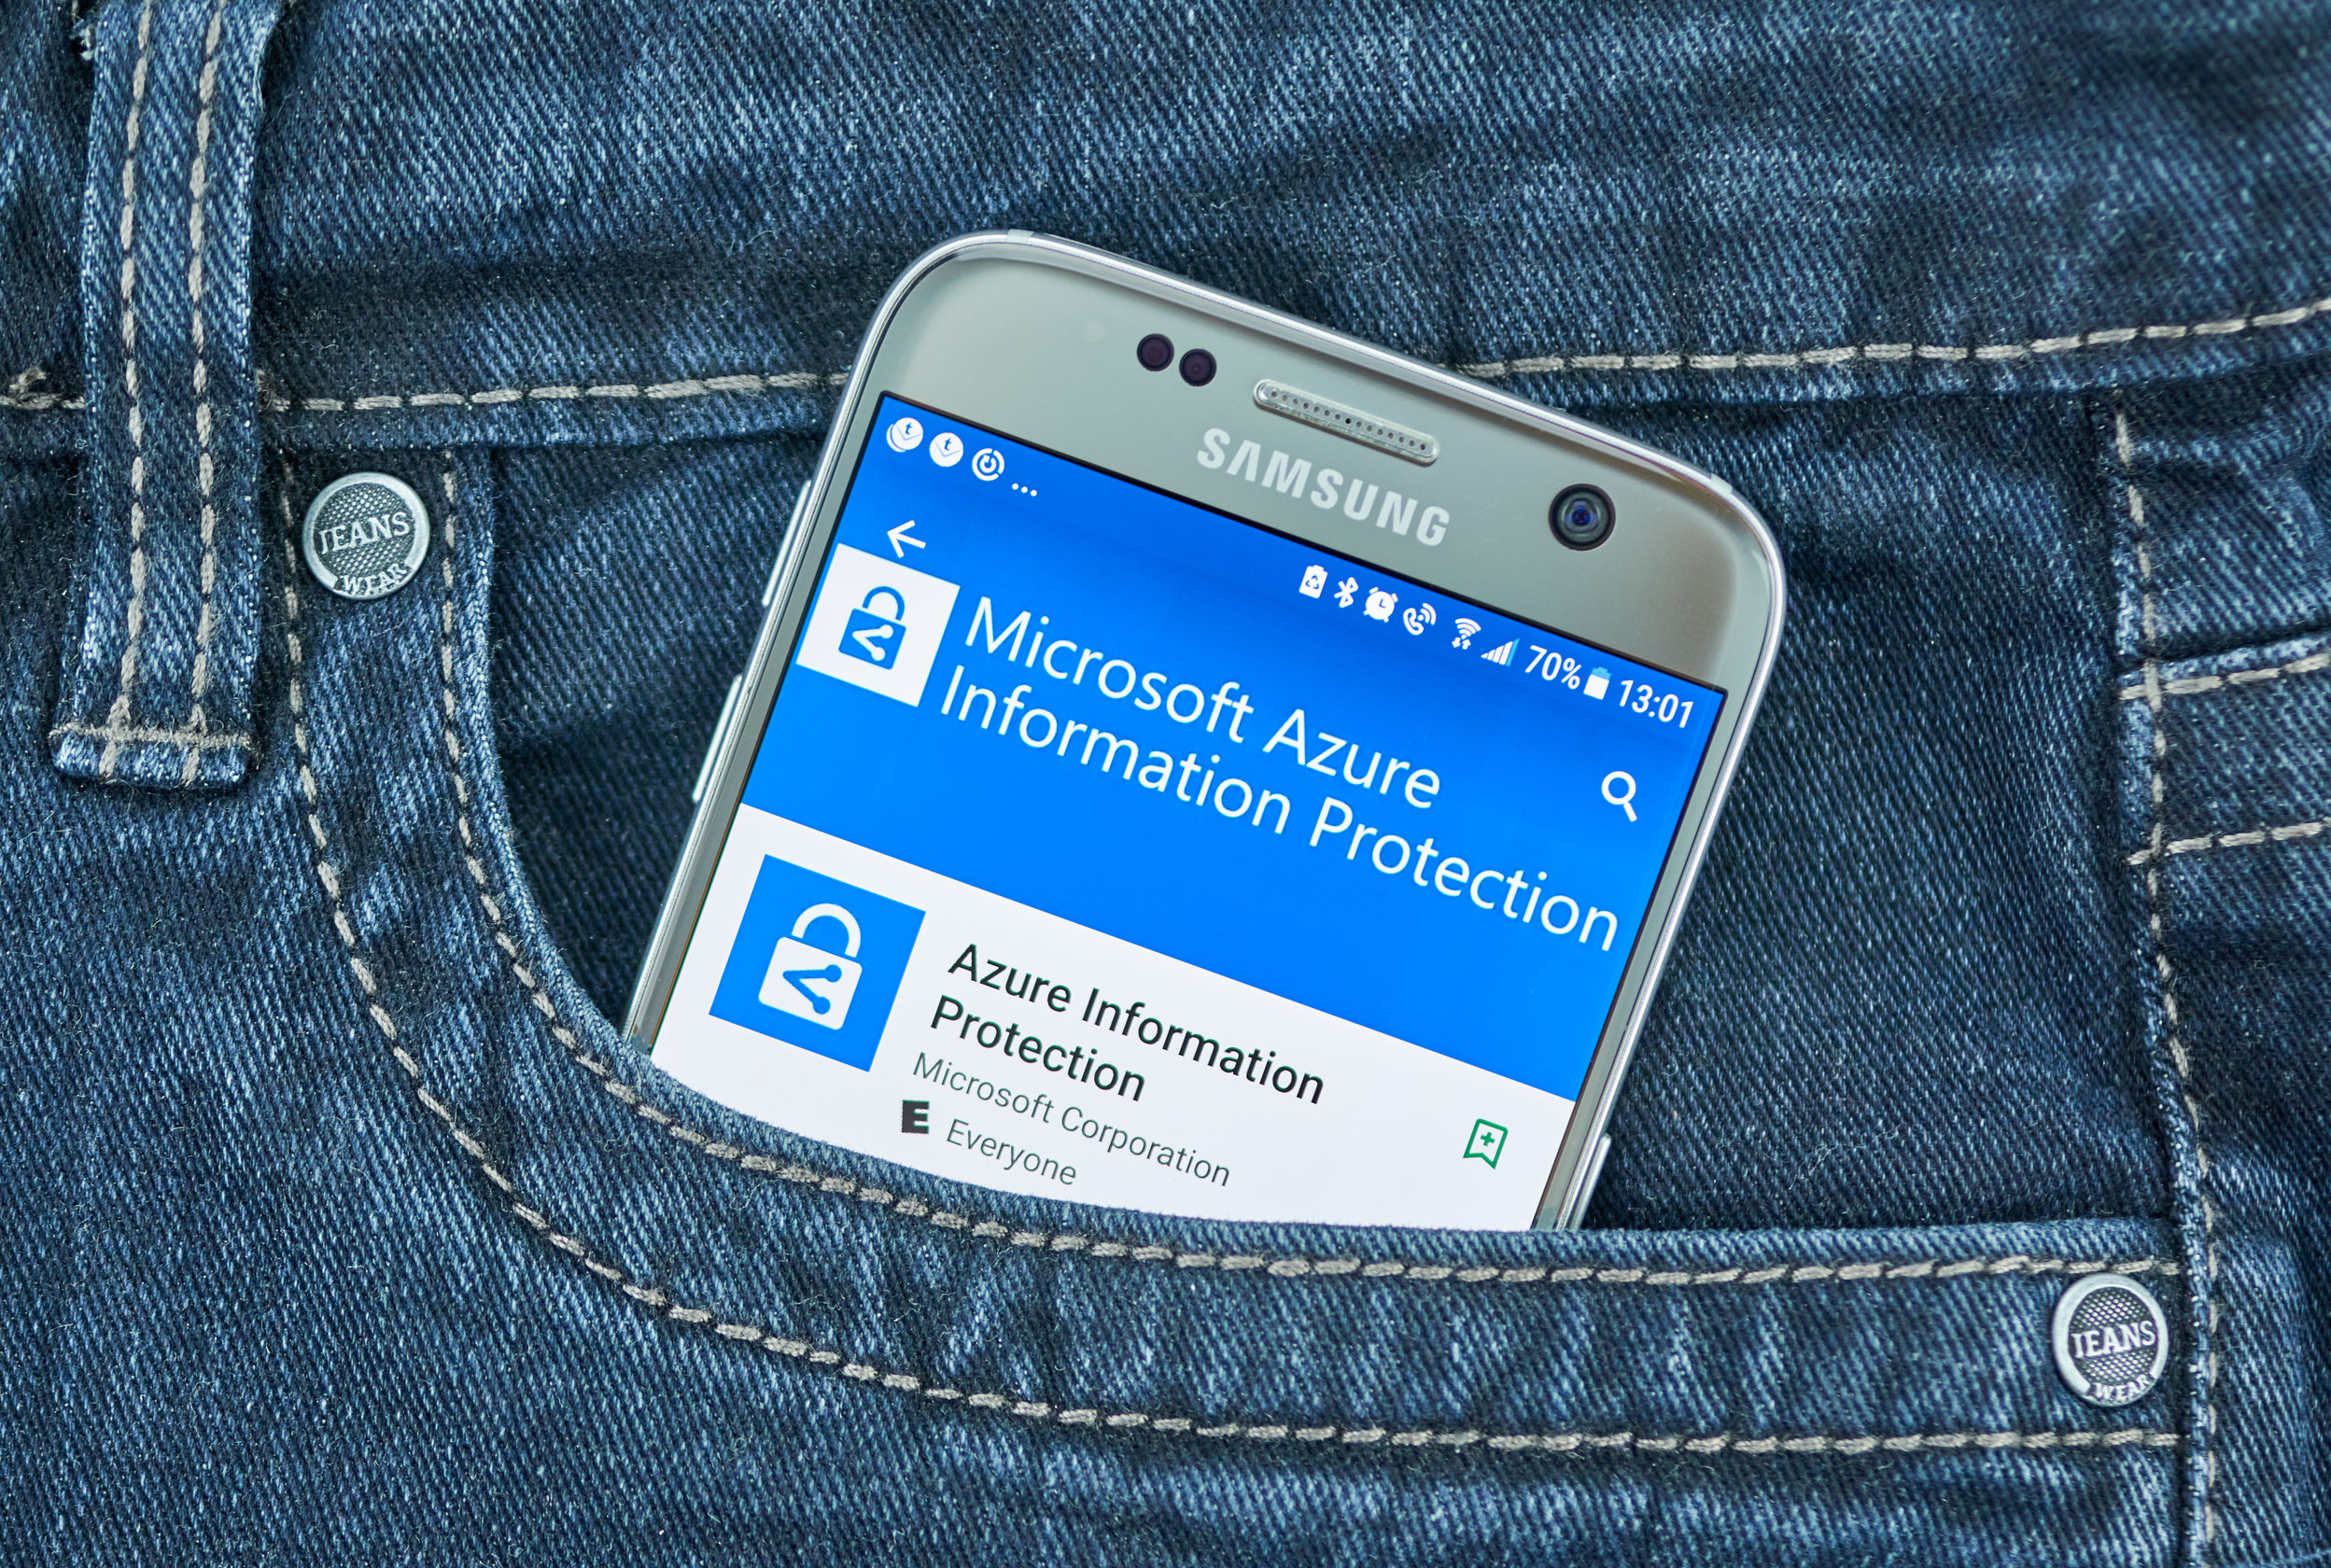 microsoft azure information protection mobile application on screen of Samsung